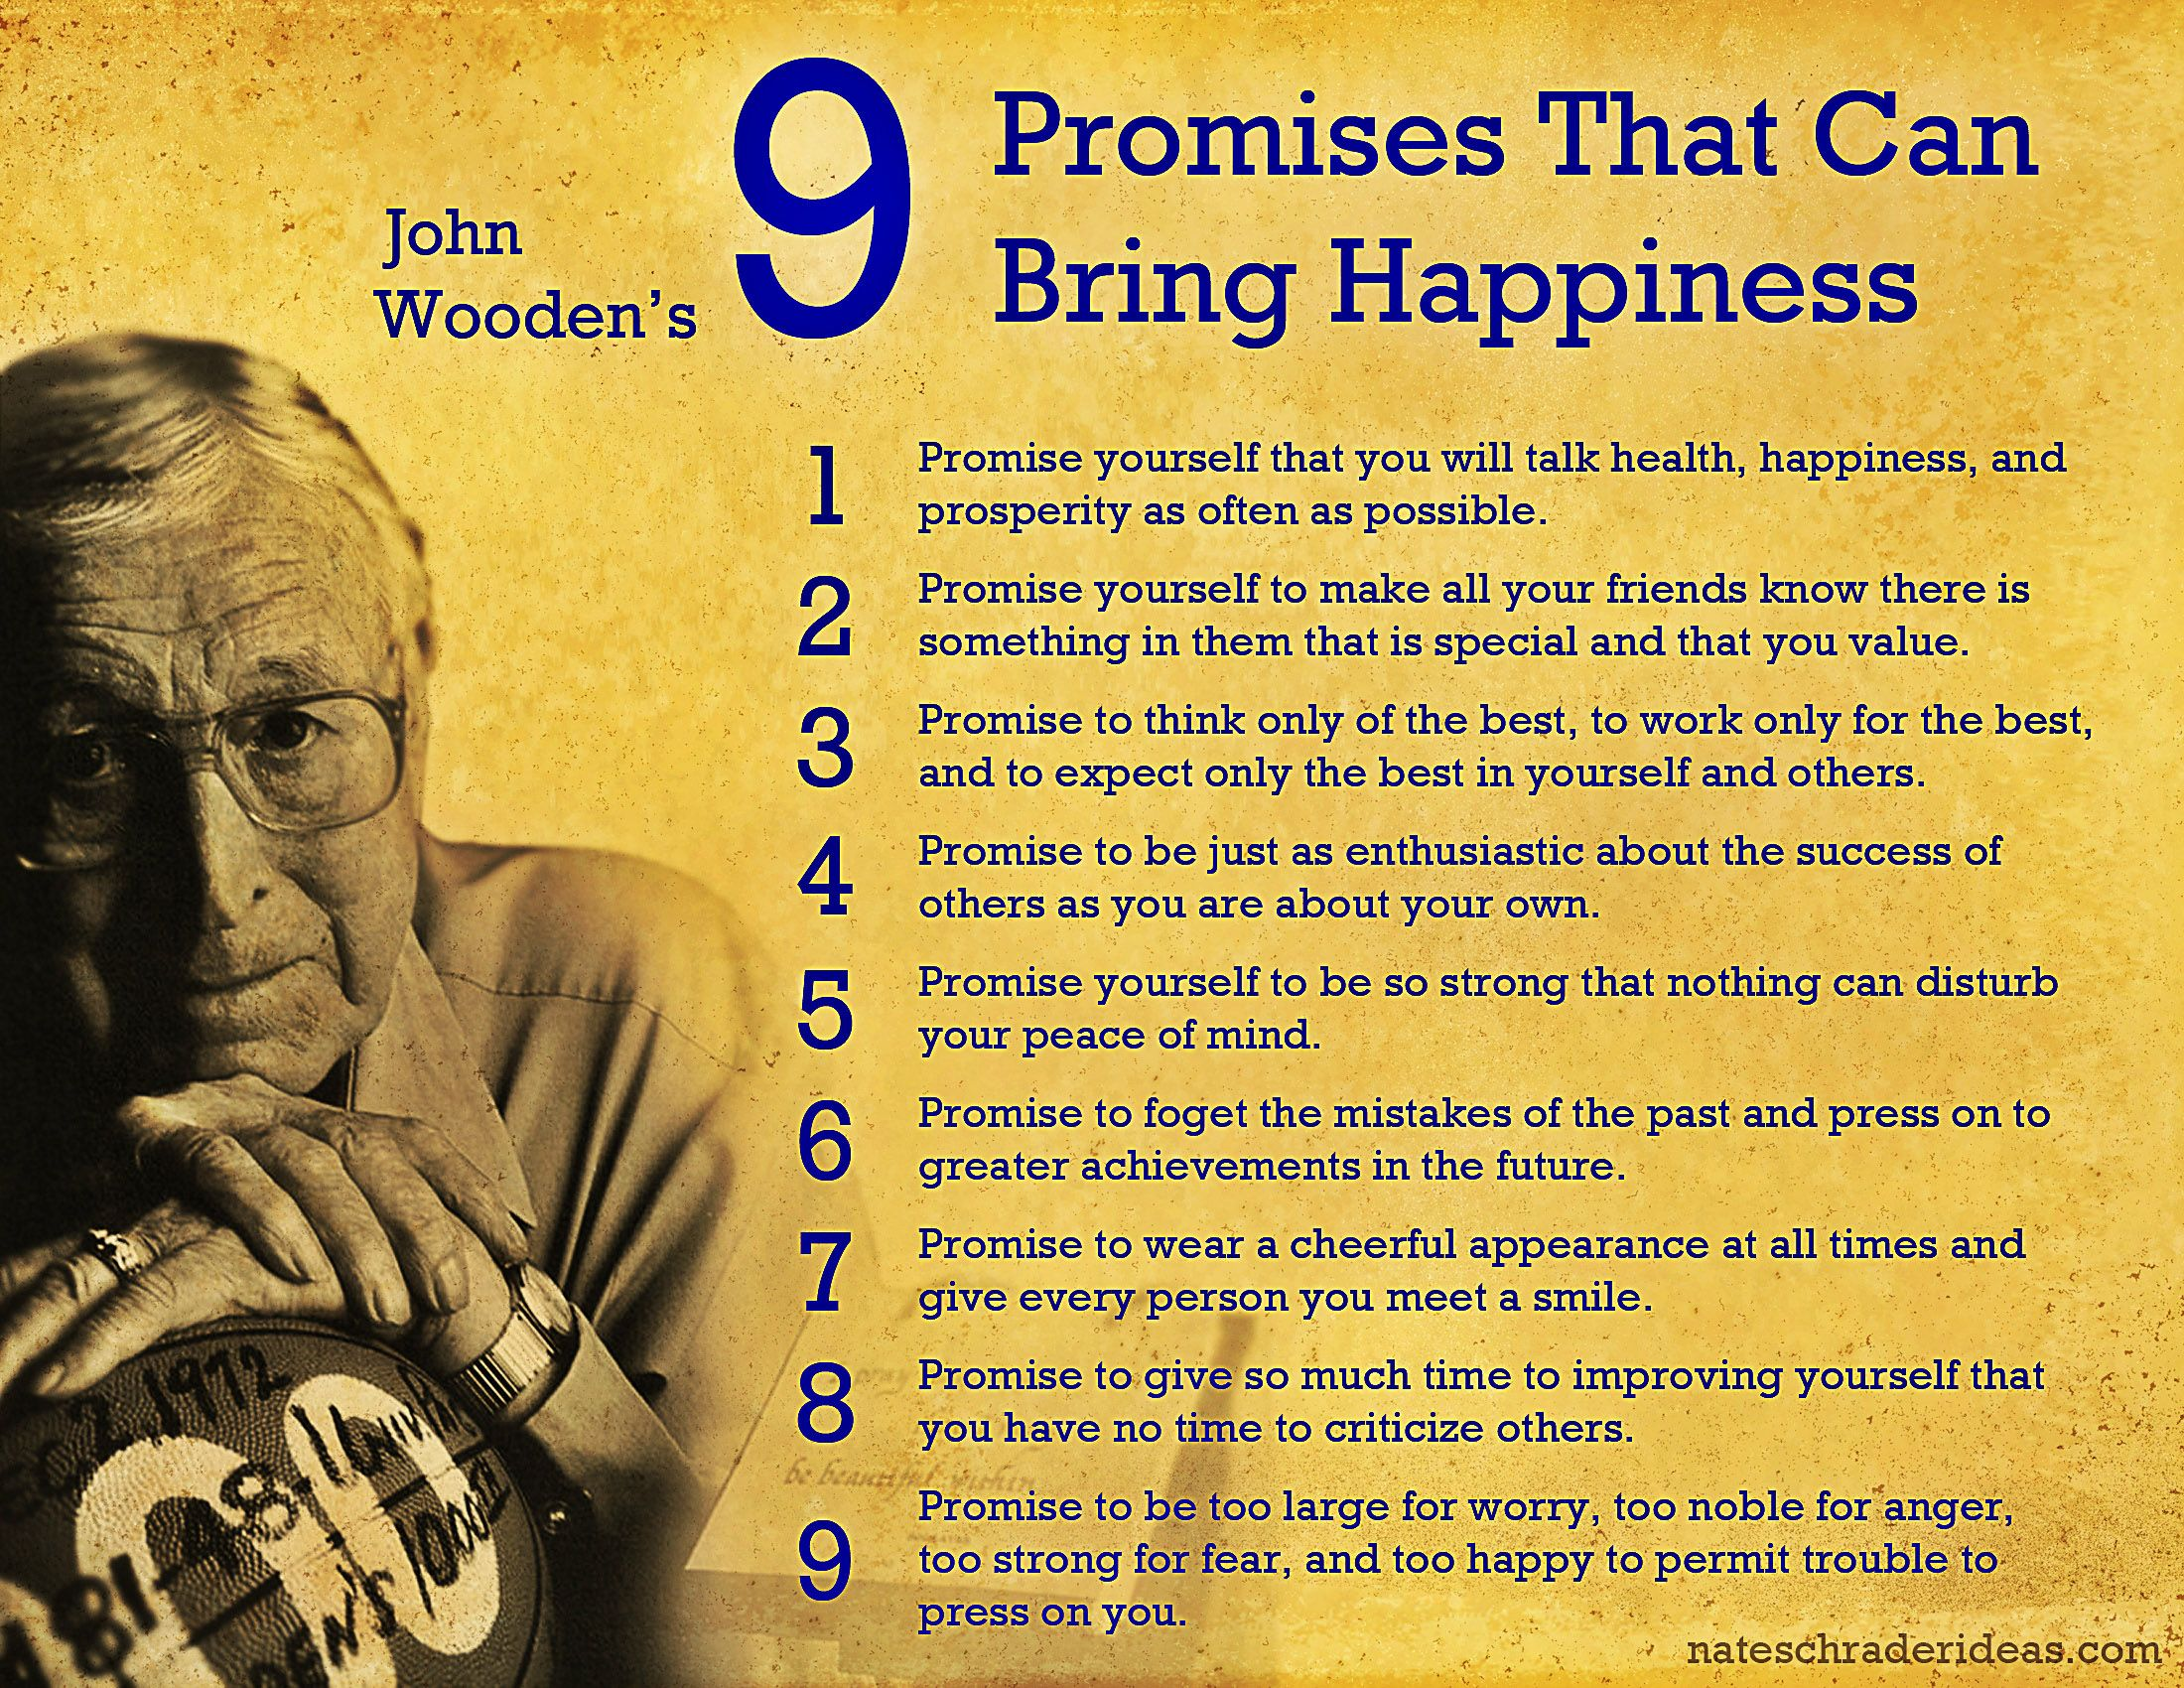 John Wooden Leadership Quotes Endearing John Wooden's Nine Promises That Can Bring Happiness Inspirational . Design Ideas